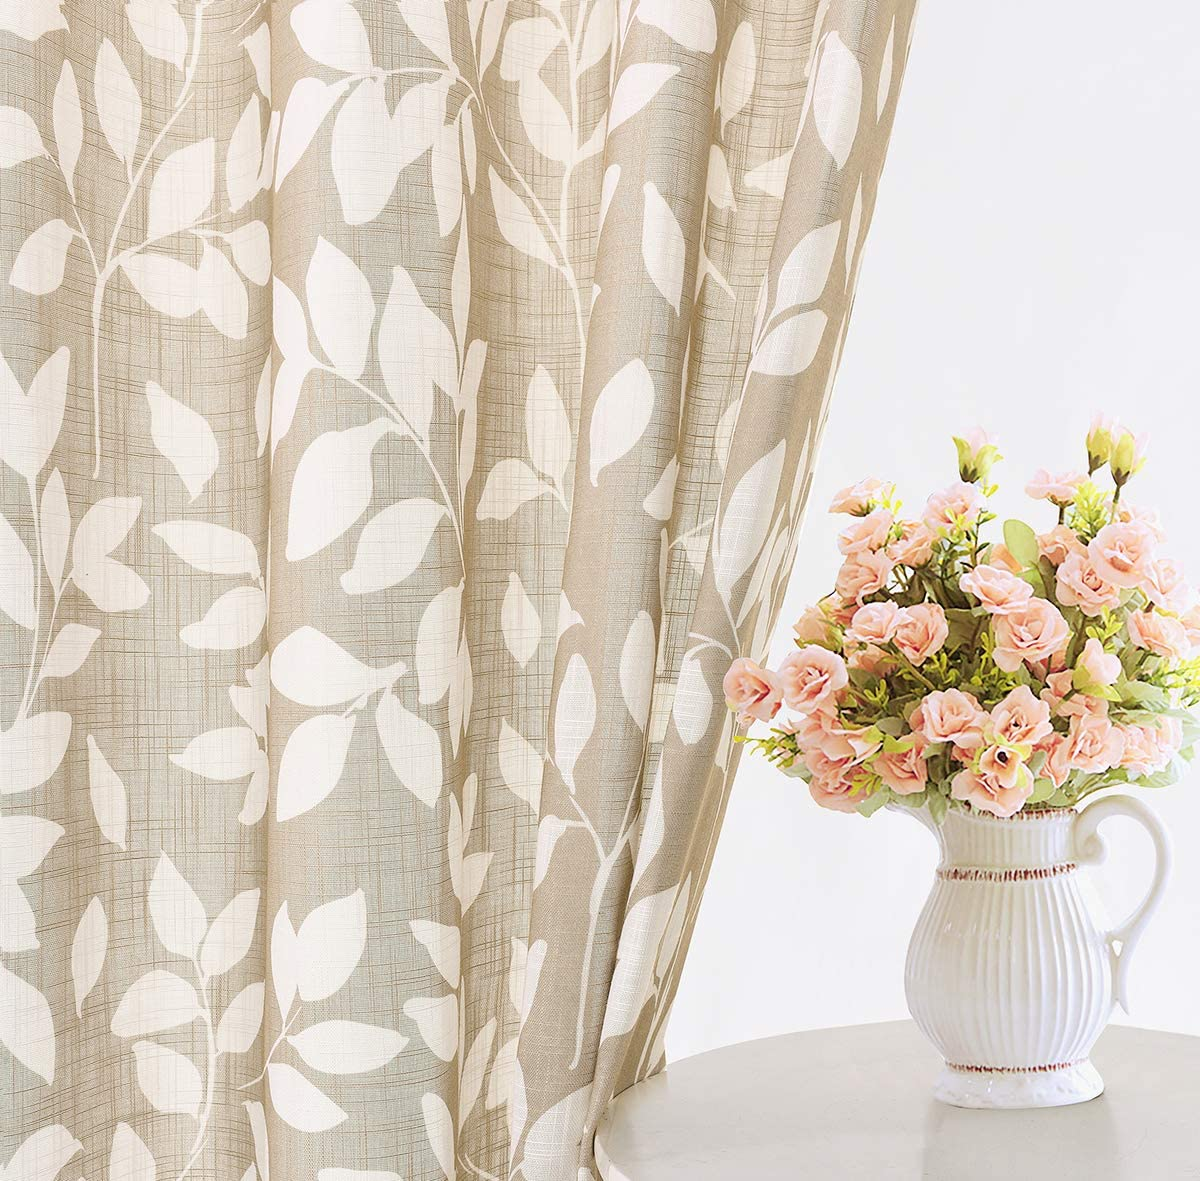 Leaf Print Semi Sheer Curtains For Living Room 52 X 63 White And Taupe Curtain Panels For Windows 2 Pack Taupe Grommet Top Amazon Ca Home Kitchen